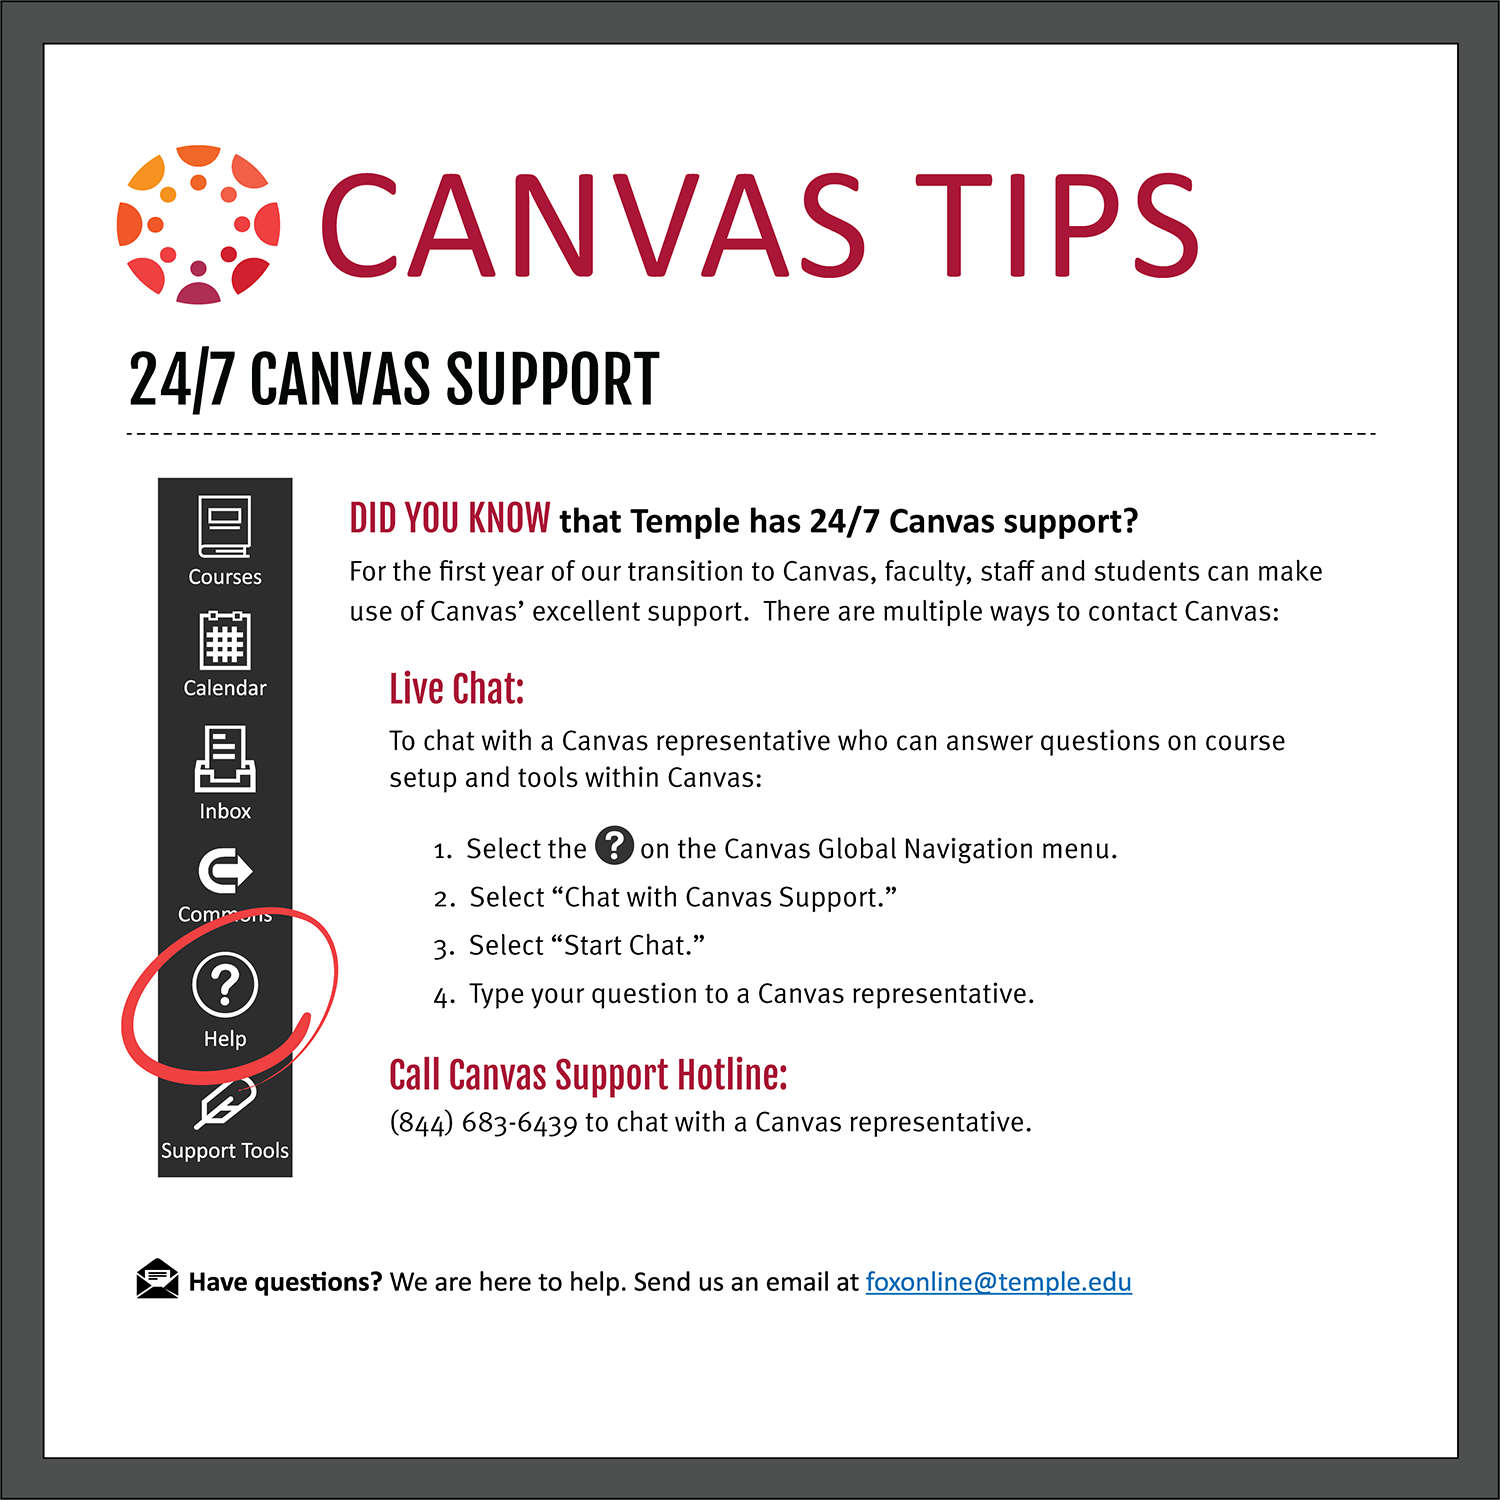 Tip 2: 24/7 Canvas Support